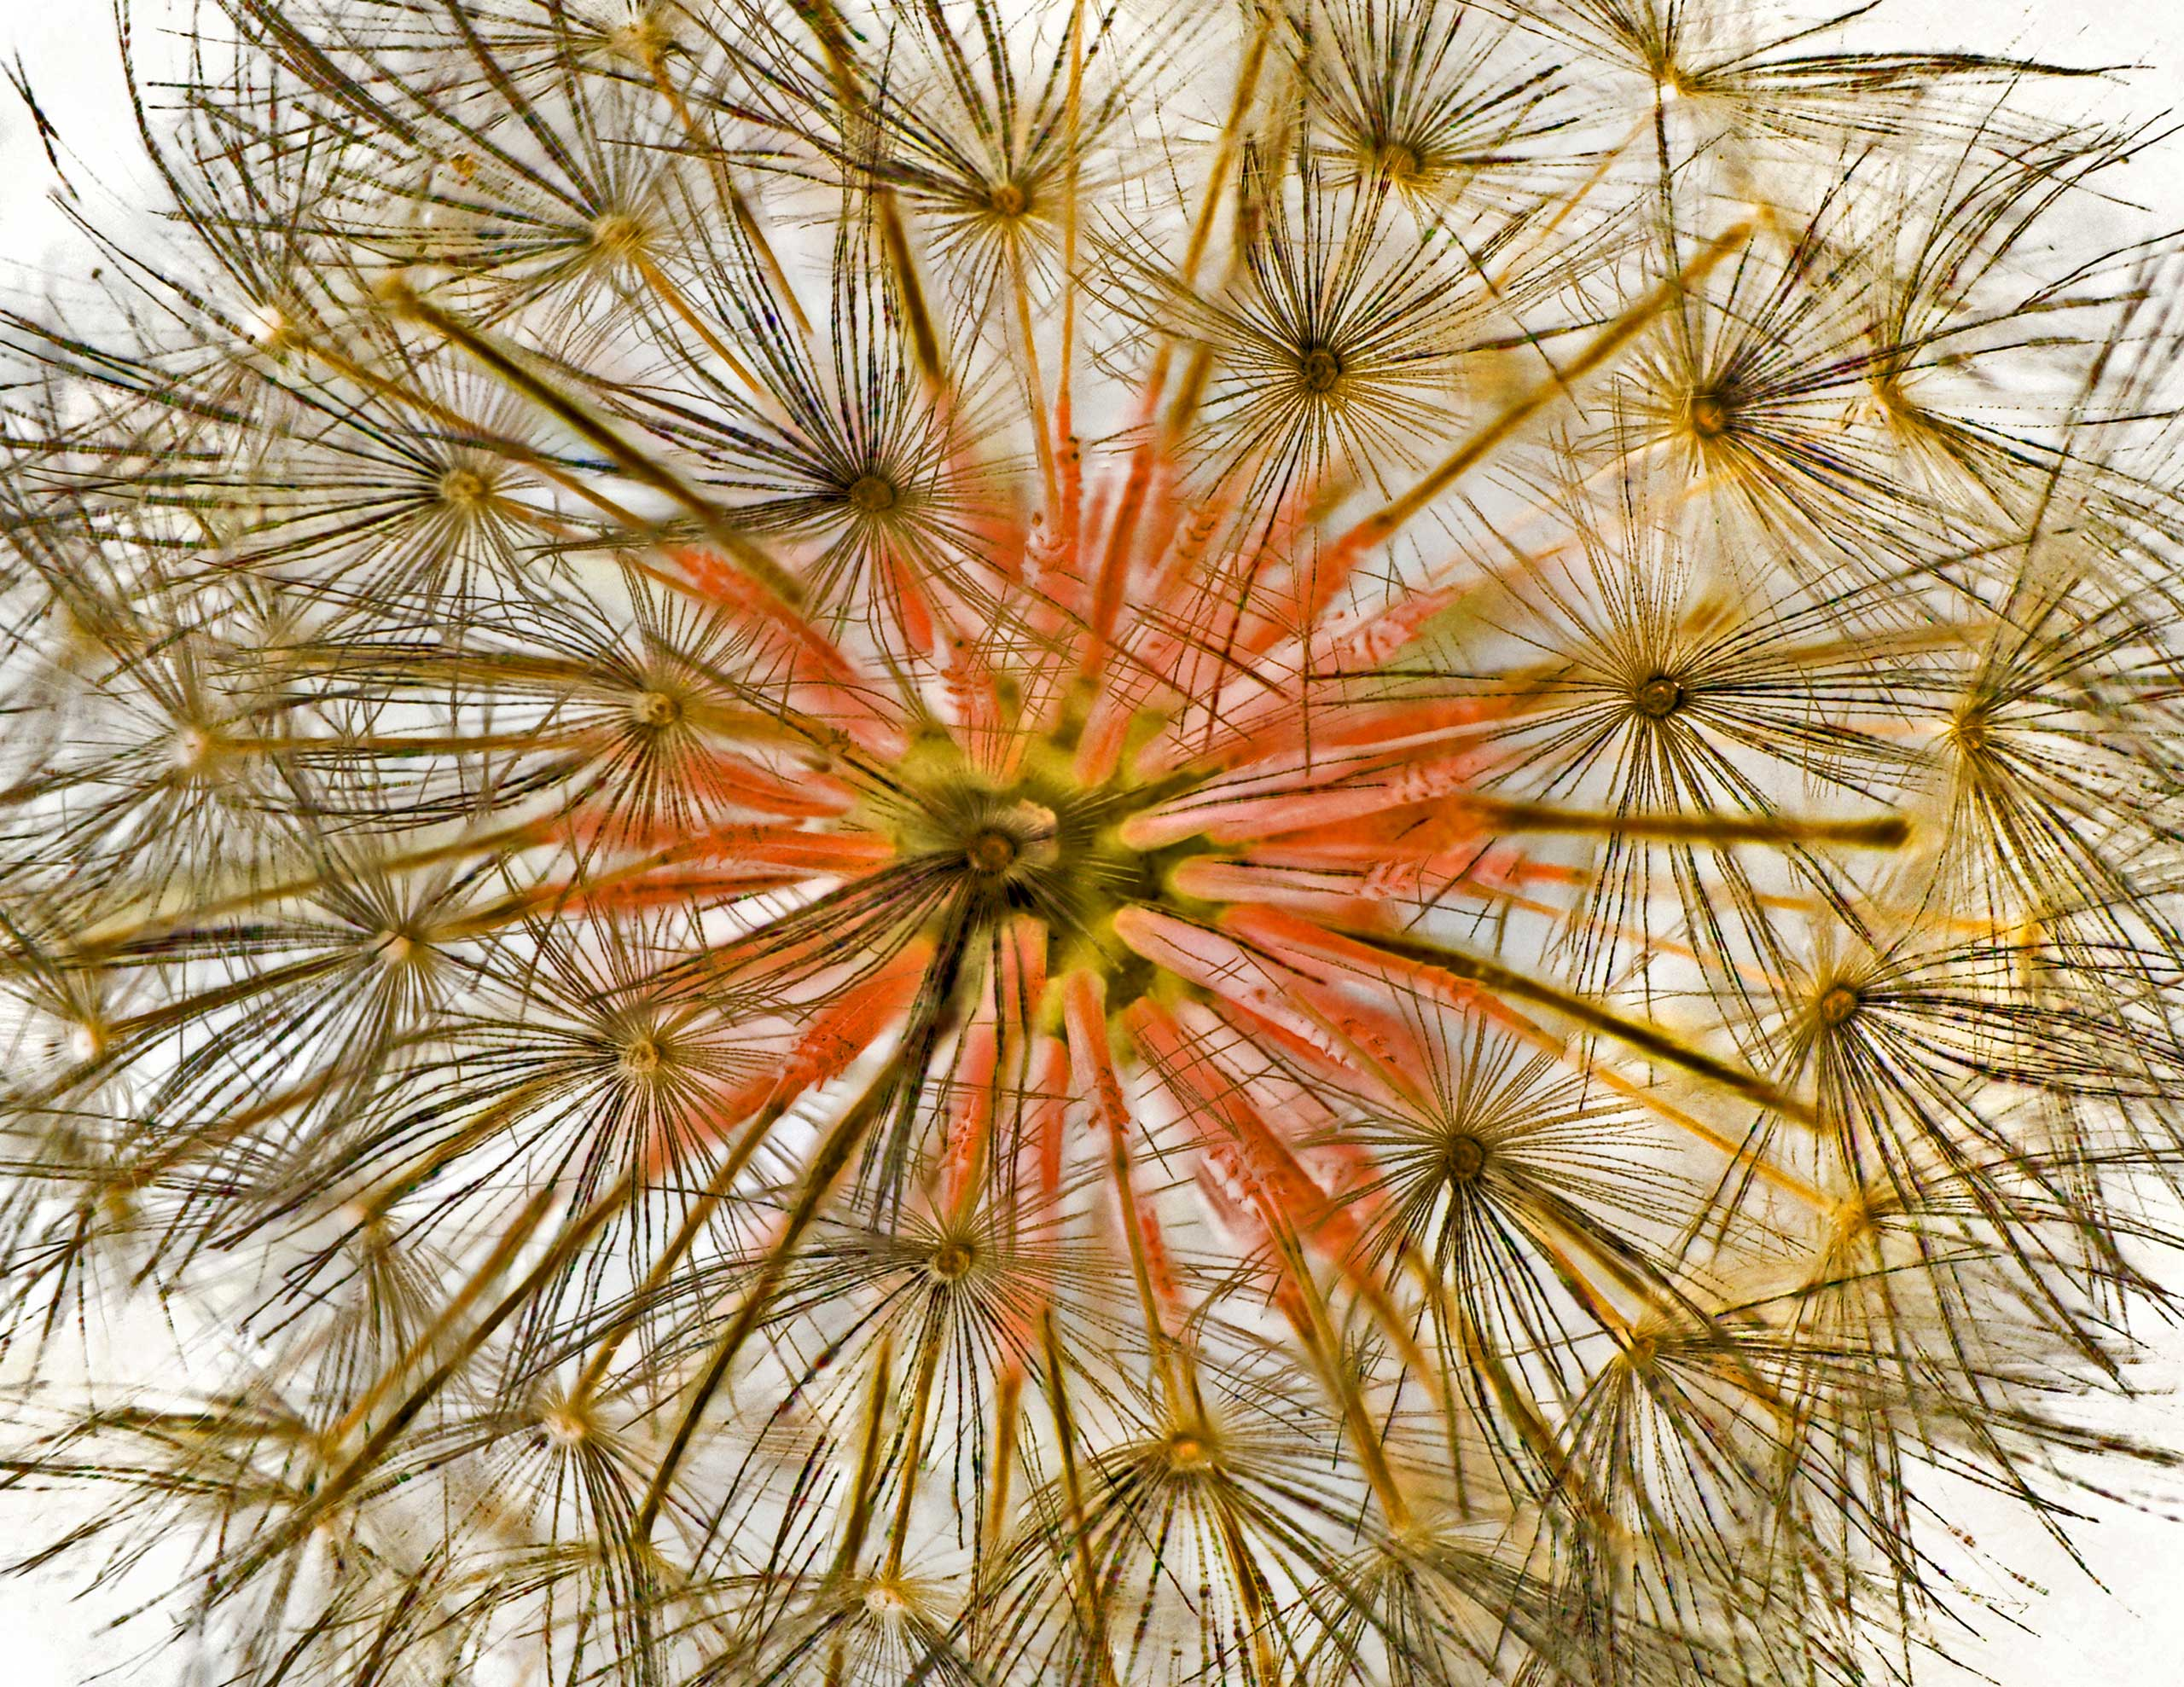 A dandelion at 10x magnification.